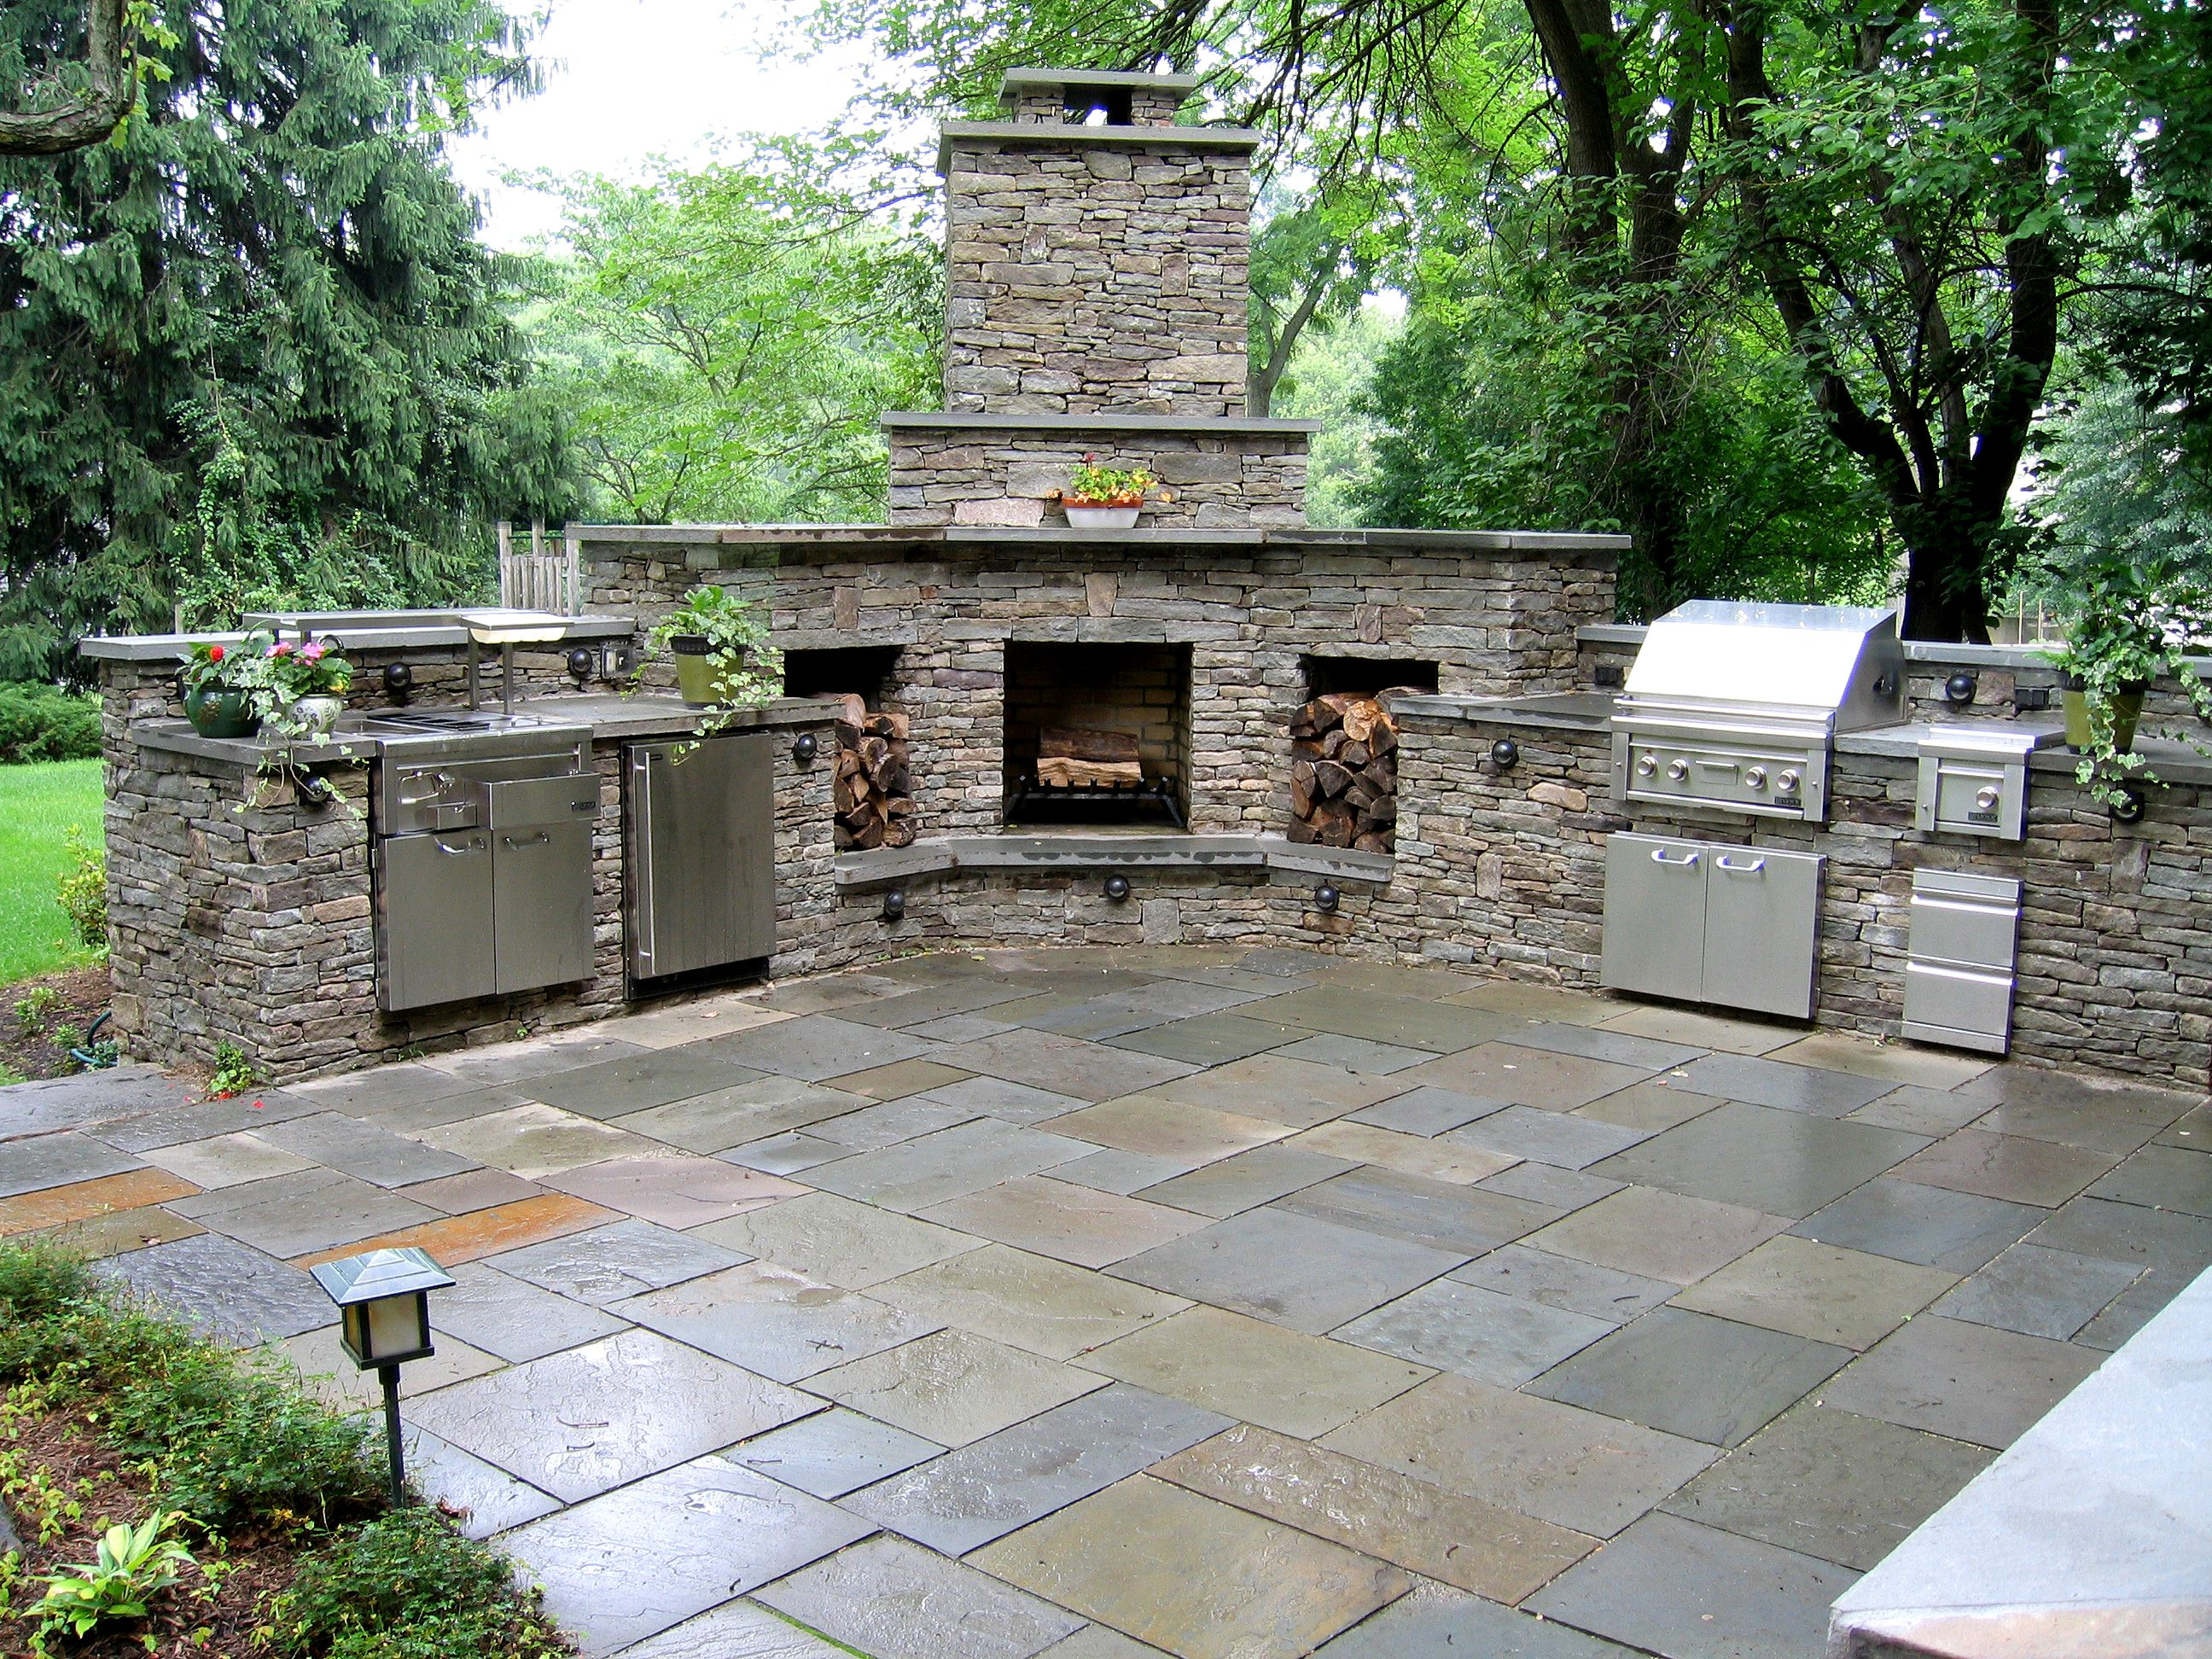 A Pavilion With An Outdoor Kitchen Fireplace And An Entertainment System Backyard Fireplace Outdoor Covered Patio Outdoor Kitchen Design